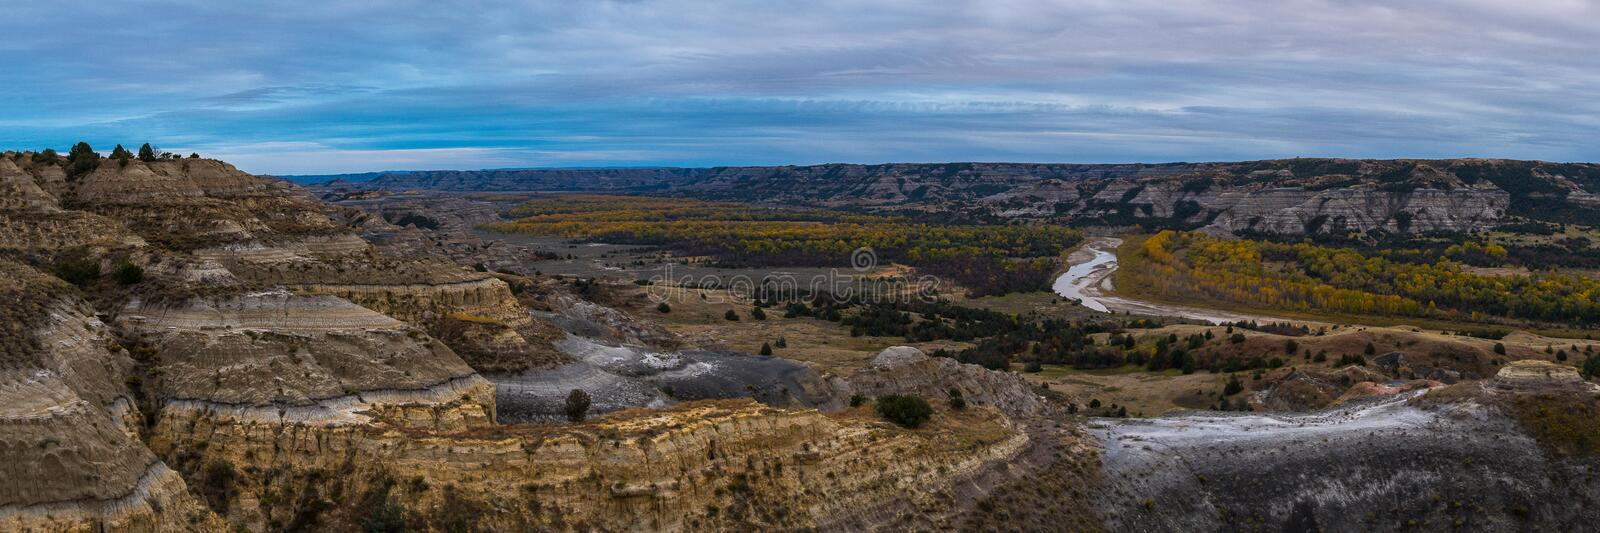 Landscape Views of Theodore Roosevelt National Park. Theodore Roosevelt National Park takes on a different look in the autumn as the fall colors come out in an stock images